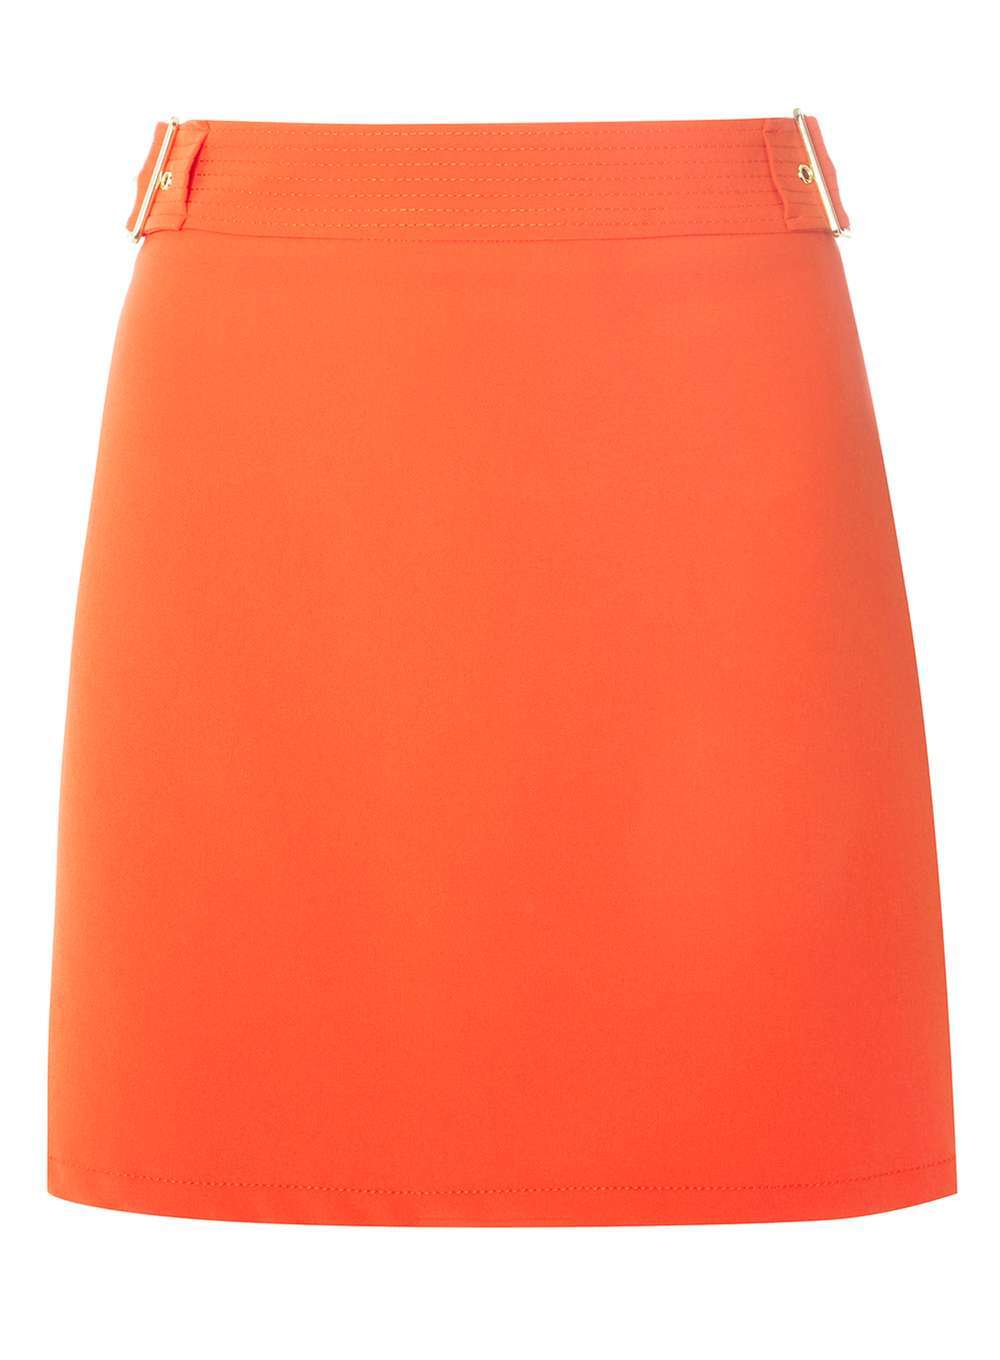 Womens Red Topstitch A Line Skirt Red - length: mini; pattern: plain; fit: body skimming; waist: mid/regular rise; predominant colour: coral; occasions: casual; style: mini skirt; fibres: polyester/polyamide - stretch; pattern type: fabric; texture group: woven light midweight; season: a/w 2016; wardrobe: highlight